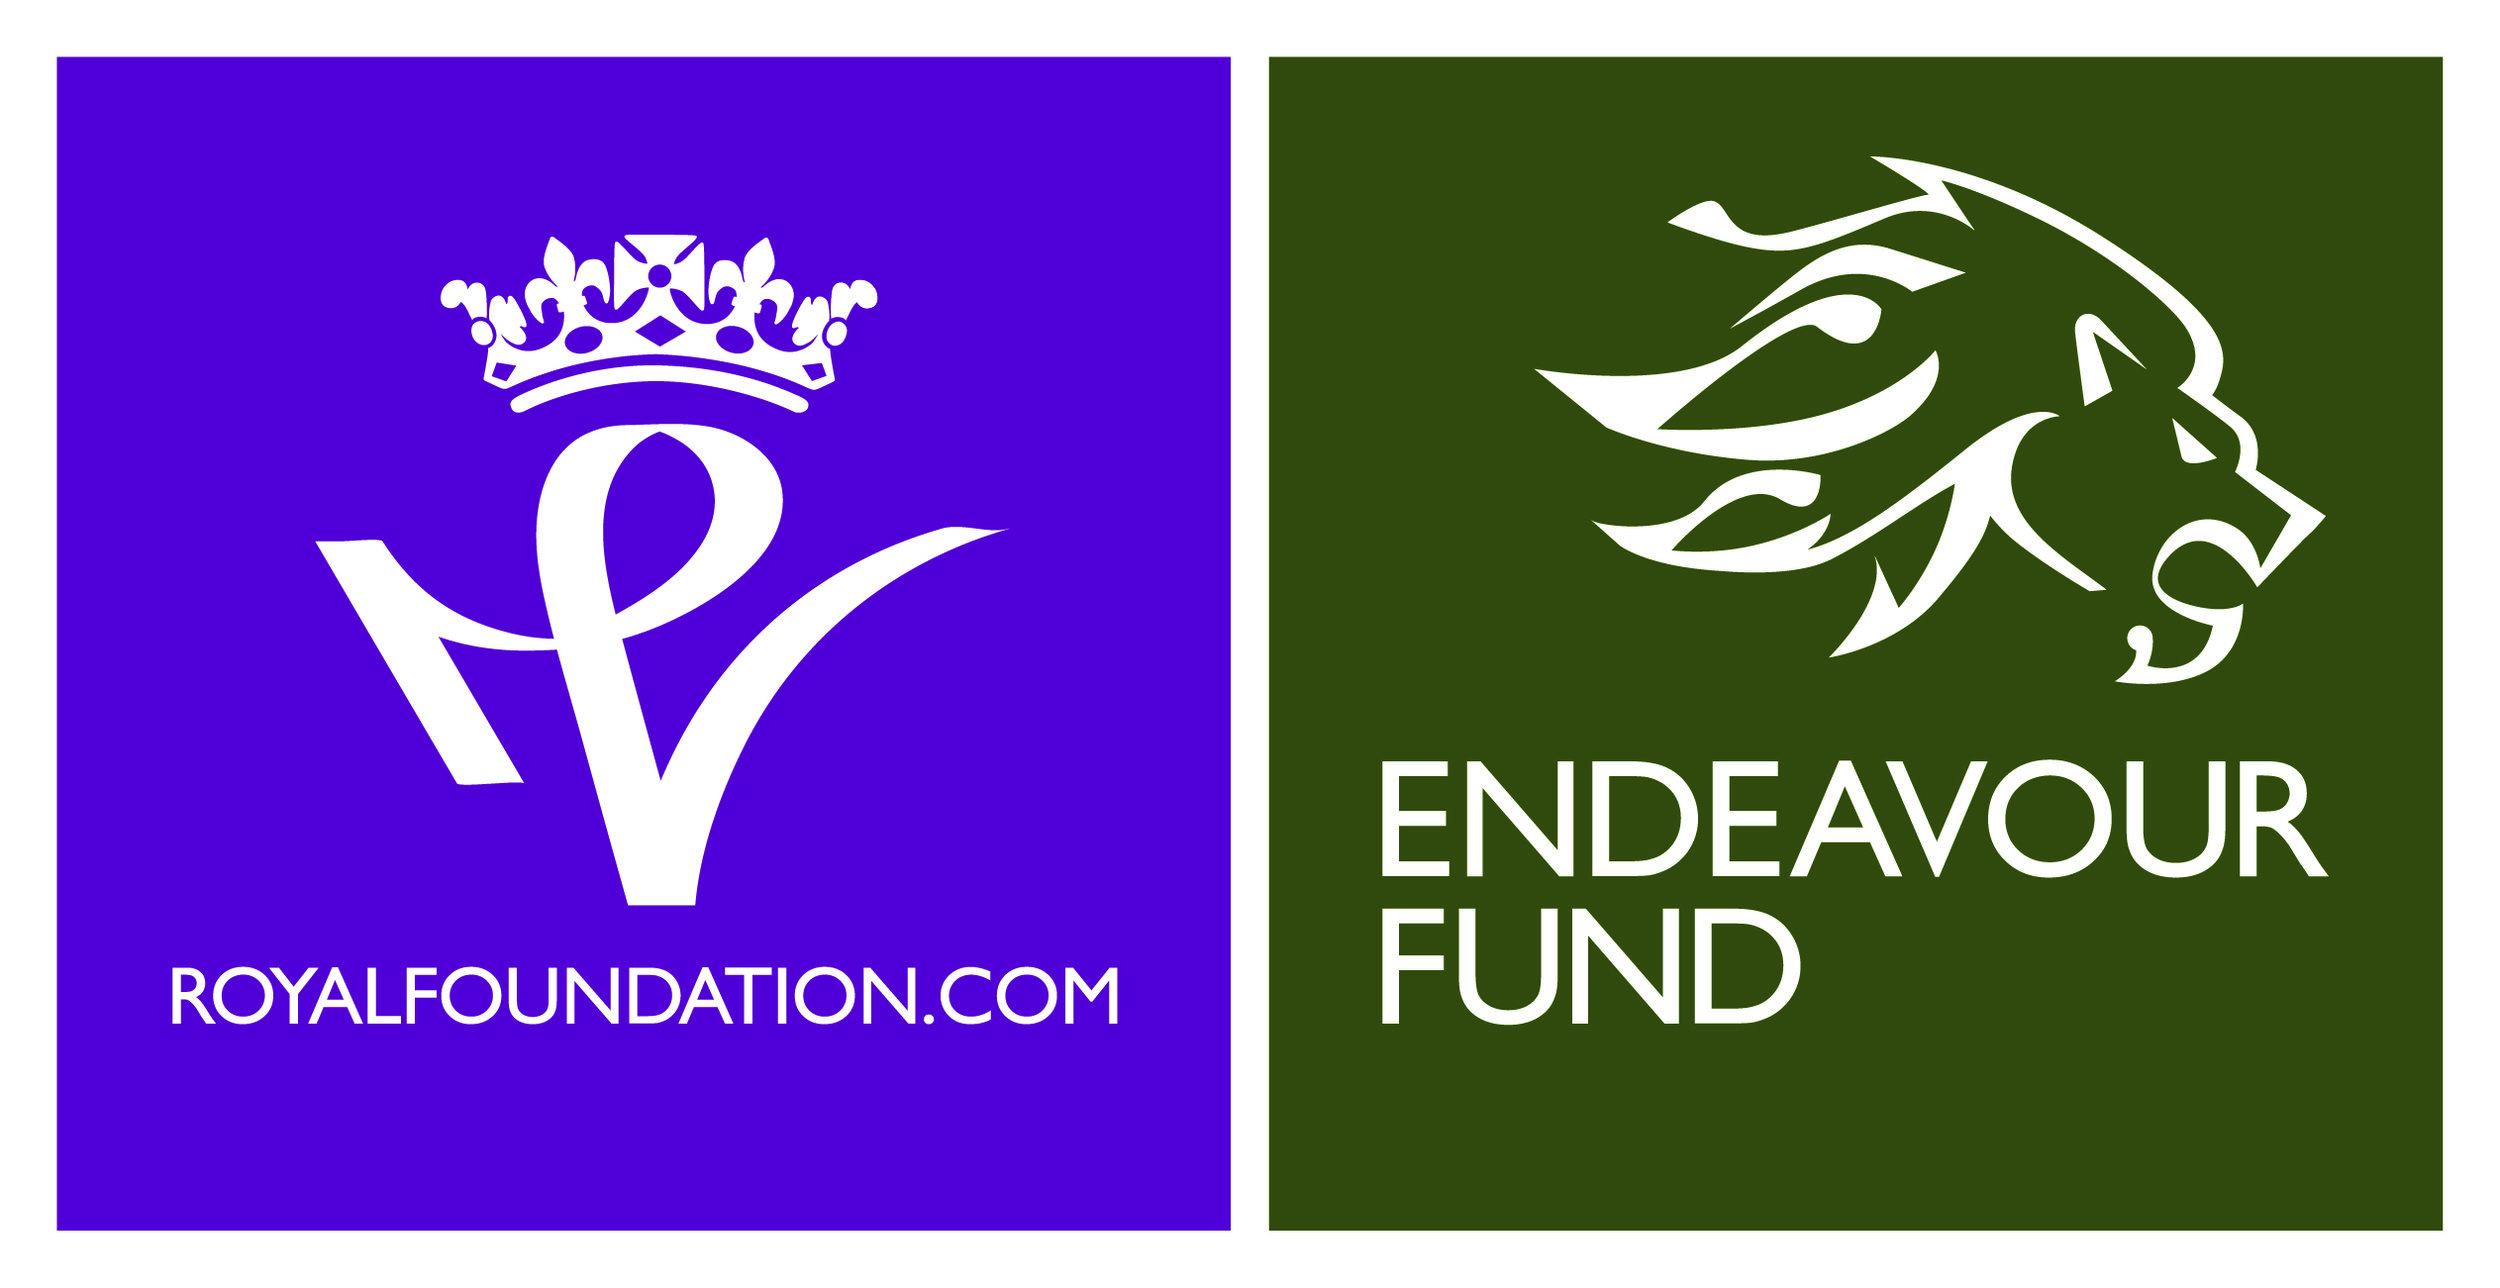 Copy of Copy of endeavour fund